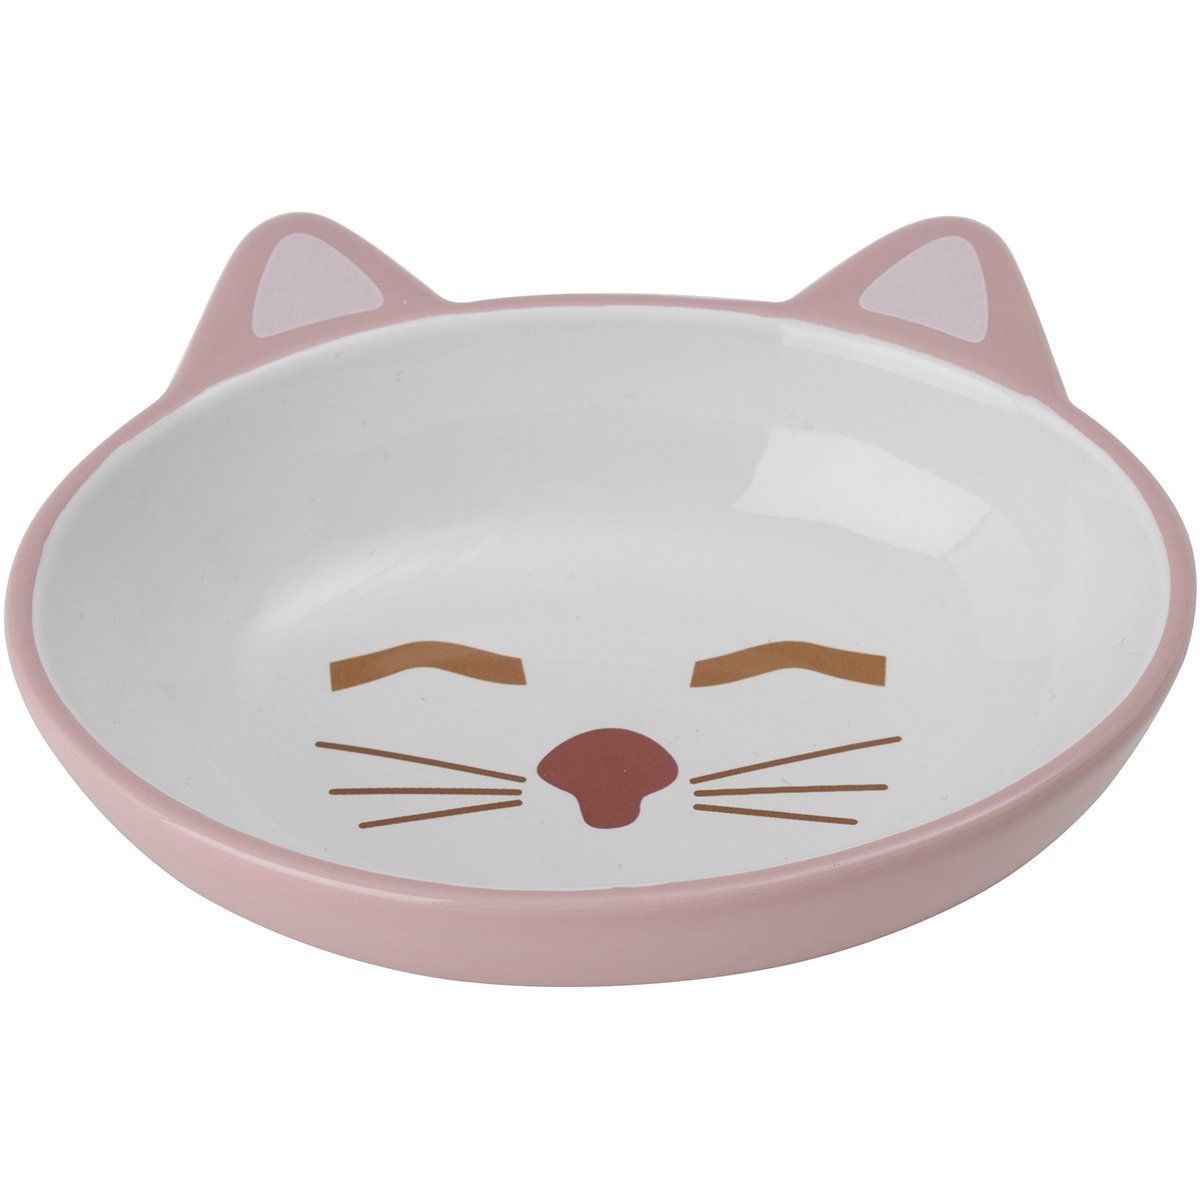 "Petrageous Designs Here Kitty 5.50"" Oval Pet Bowl, Pink & Blue Assorted"